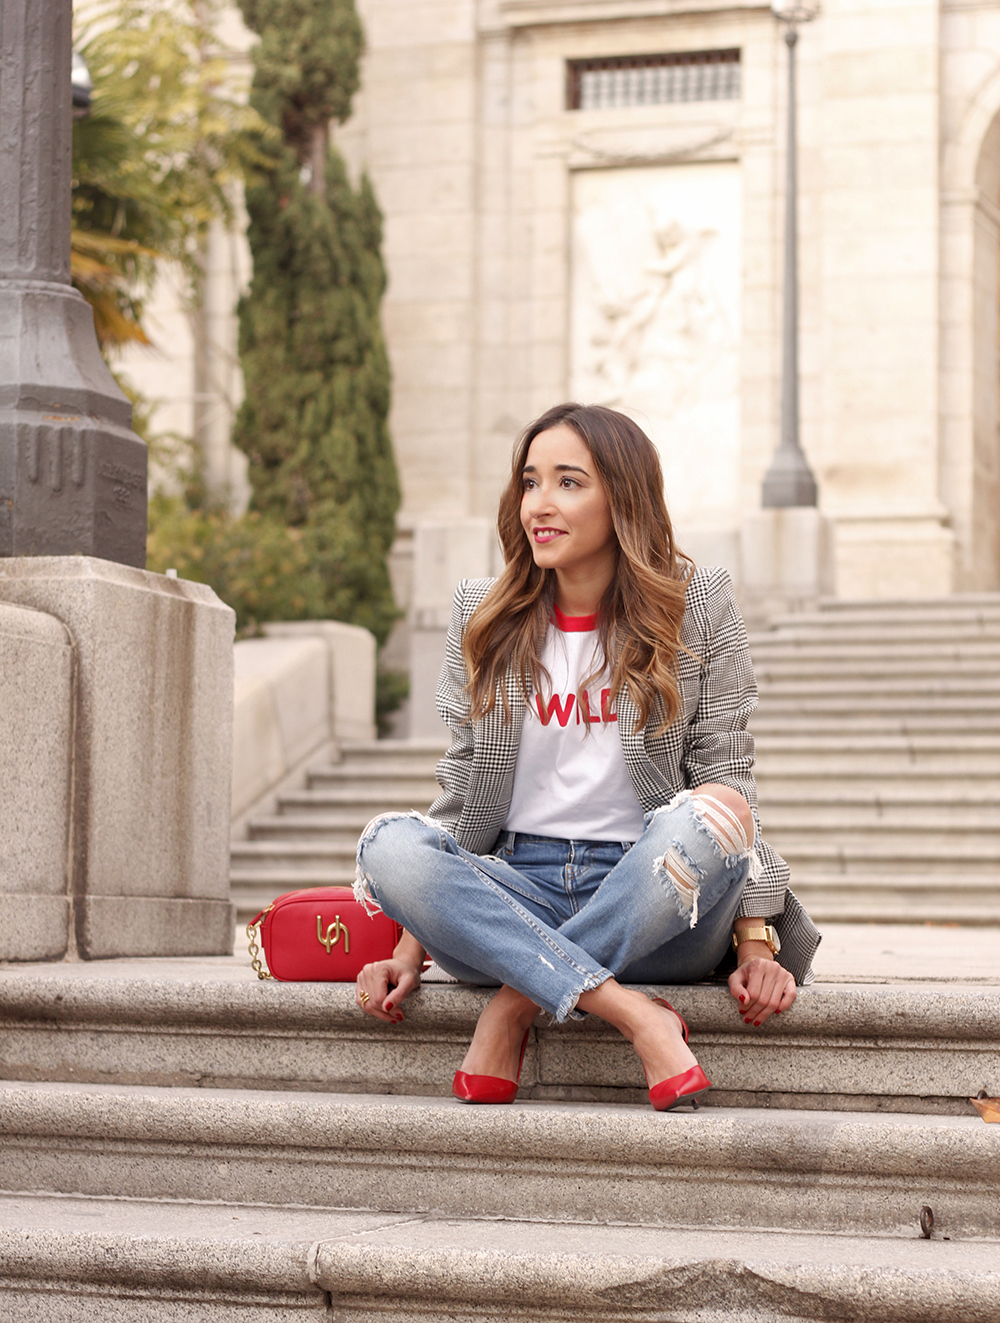 Prince of wales print blazer ripped jeans red heels uterqüe style trend fall outfit09